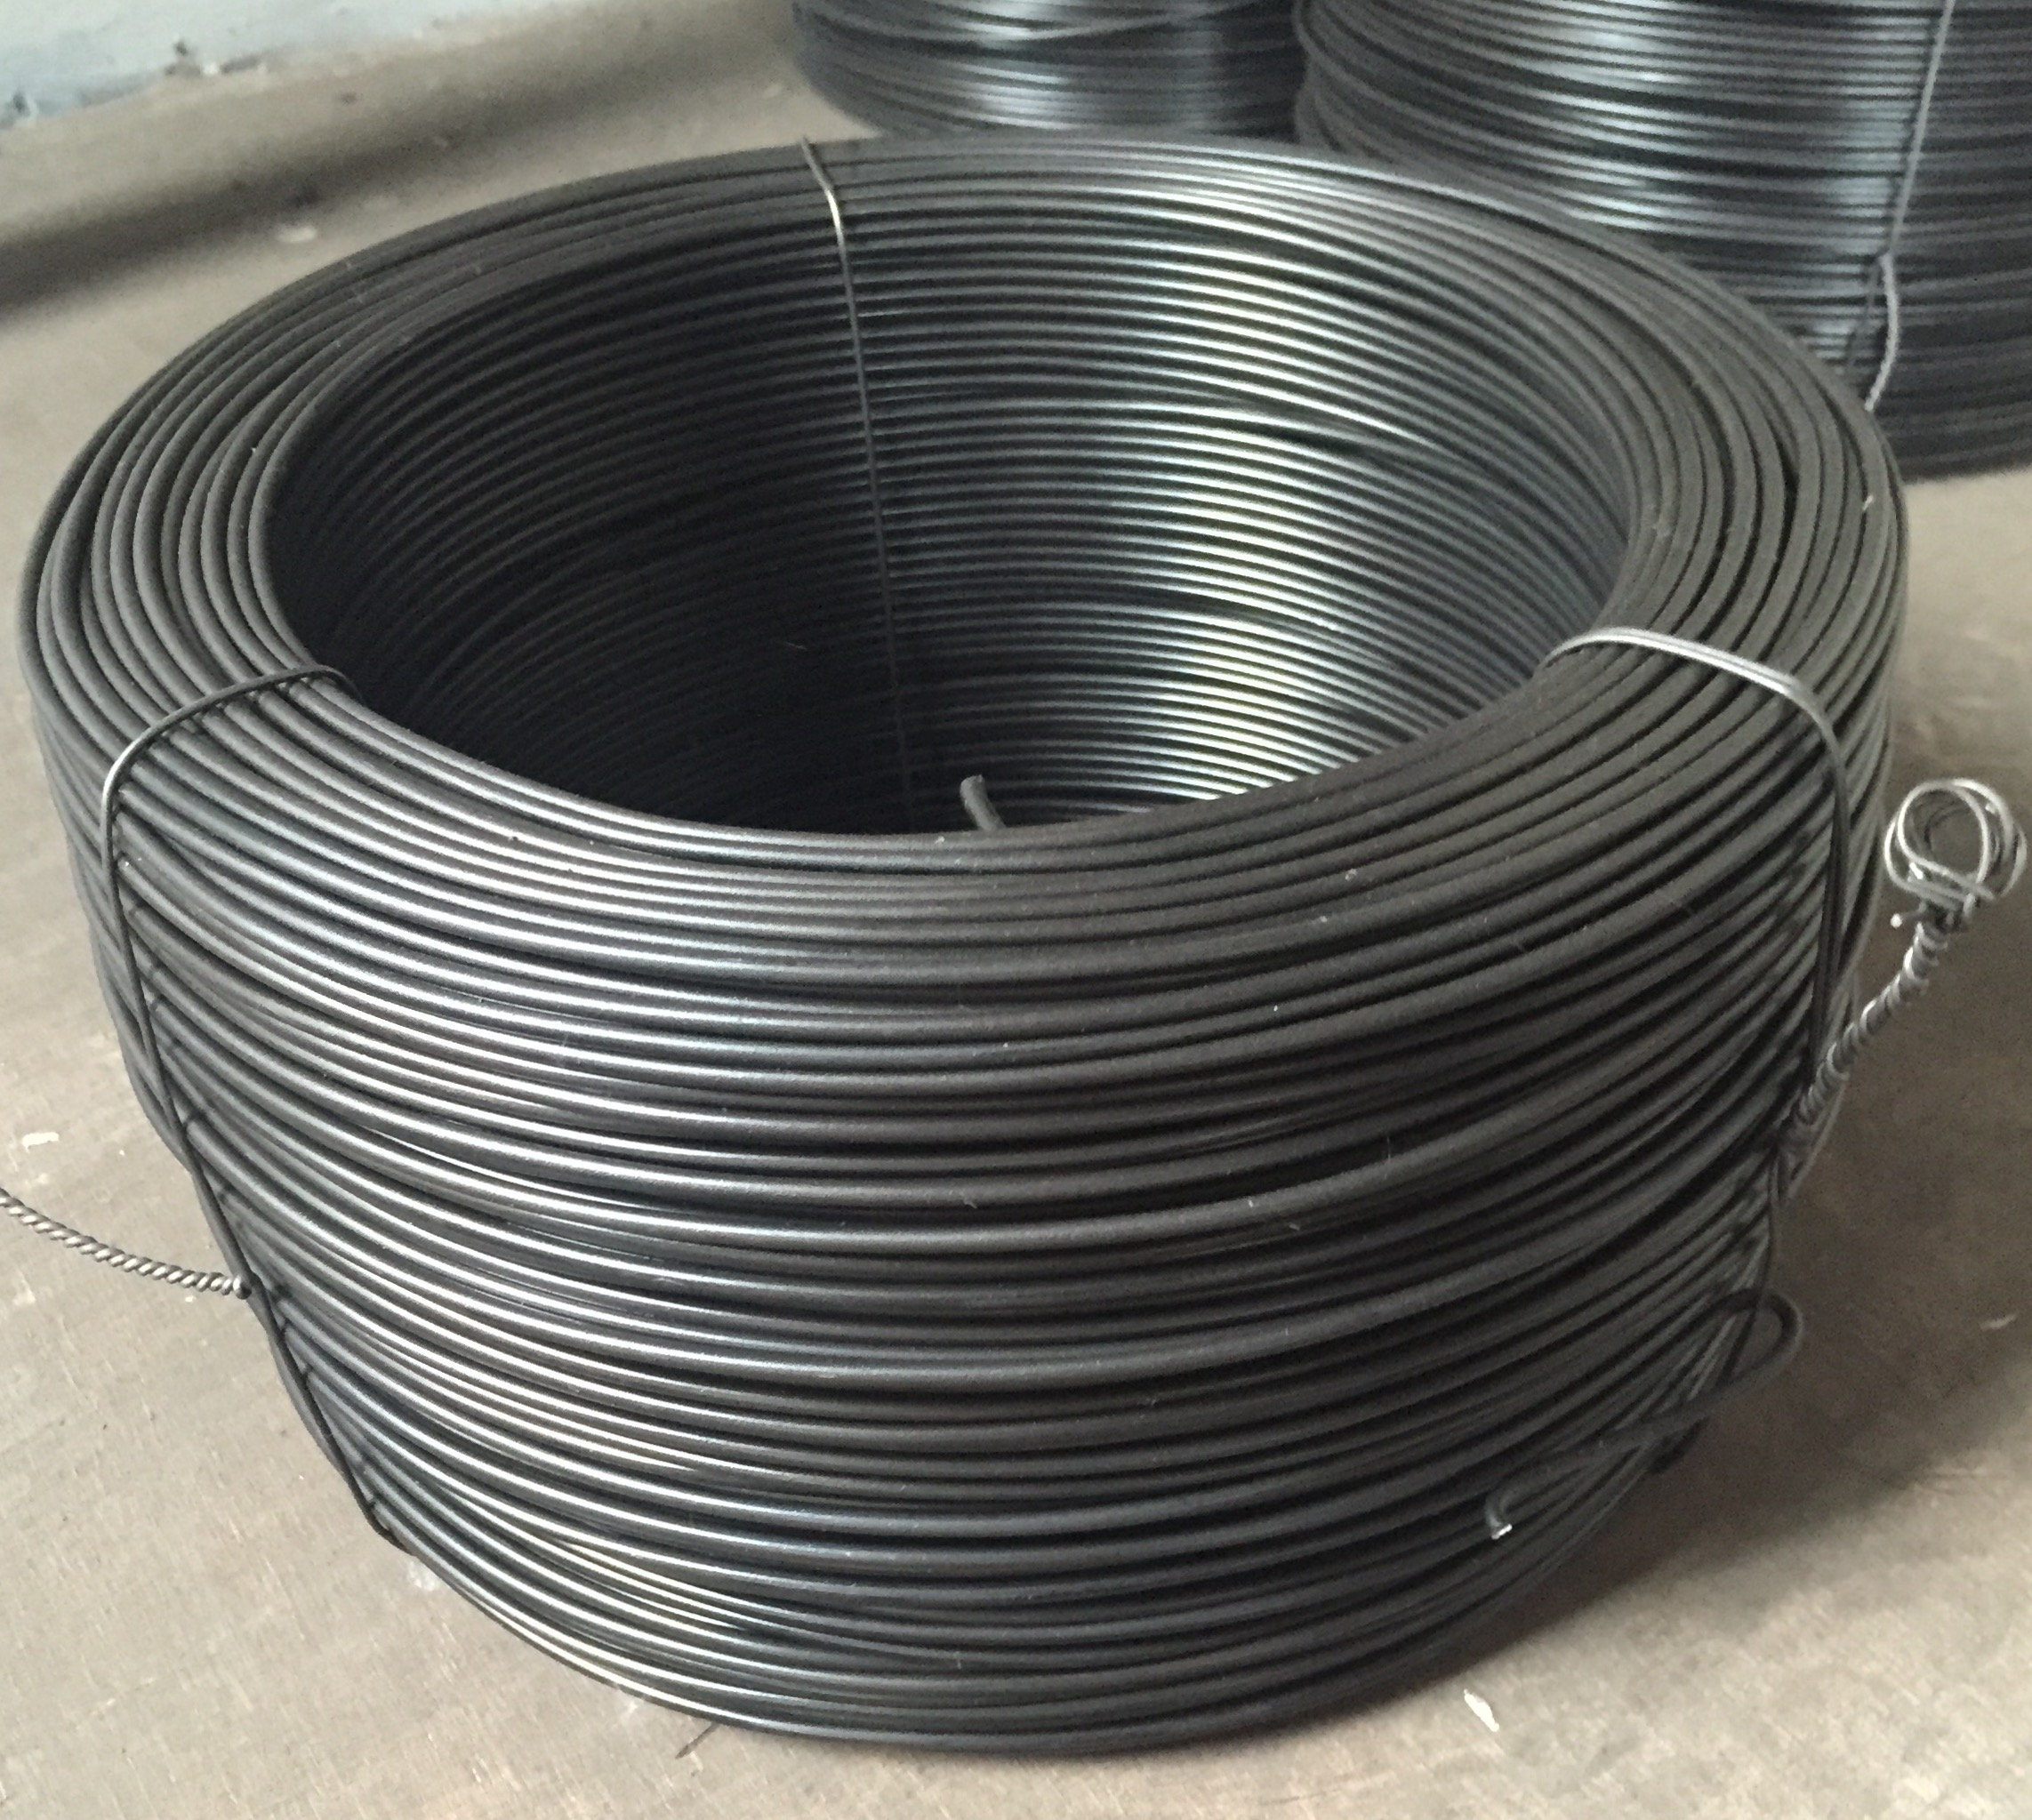 Baling Wire Product : Rewound coils of baling wire keljay